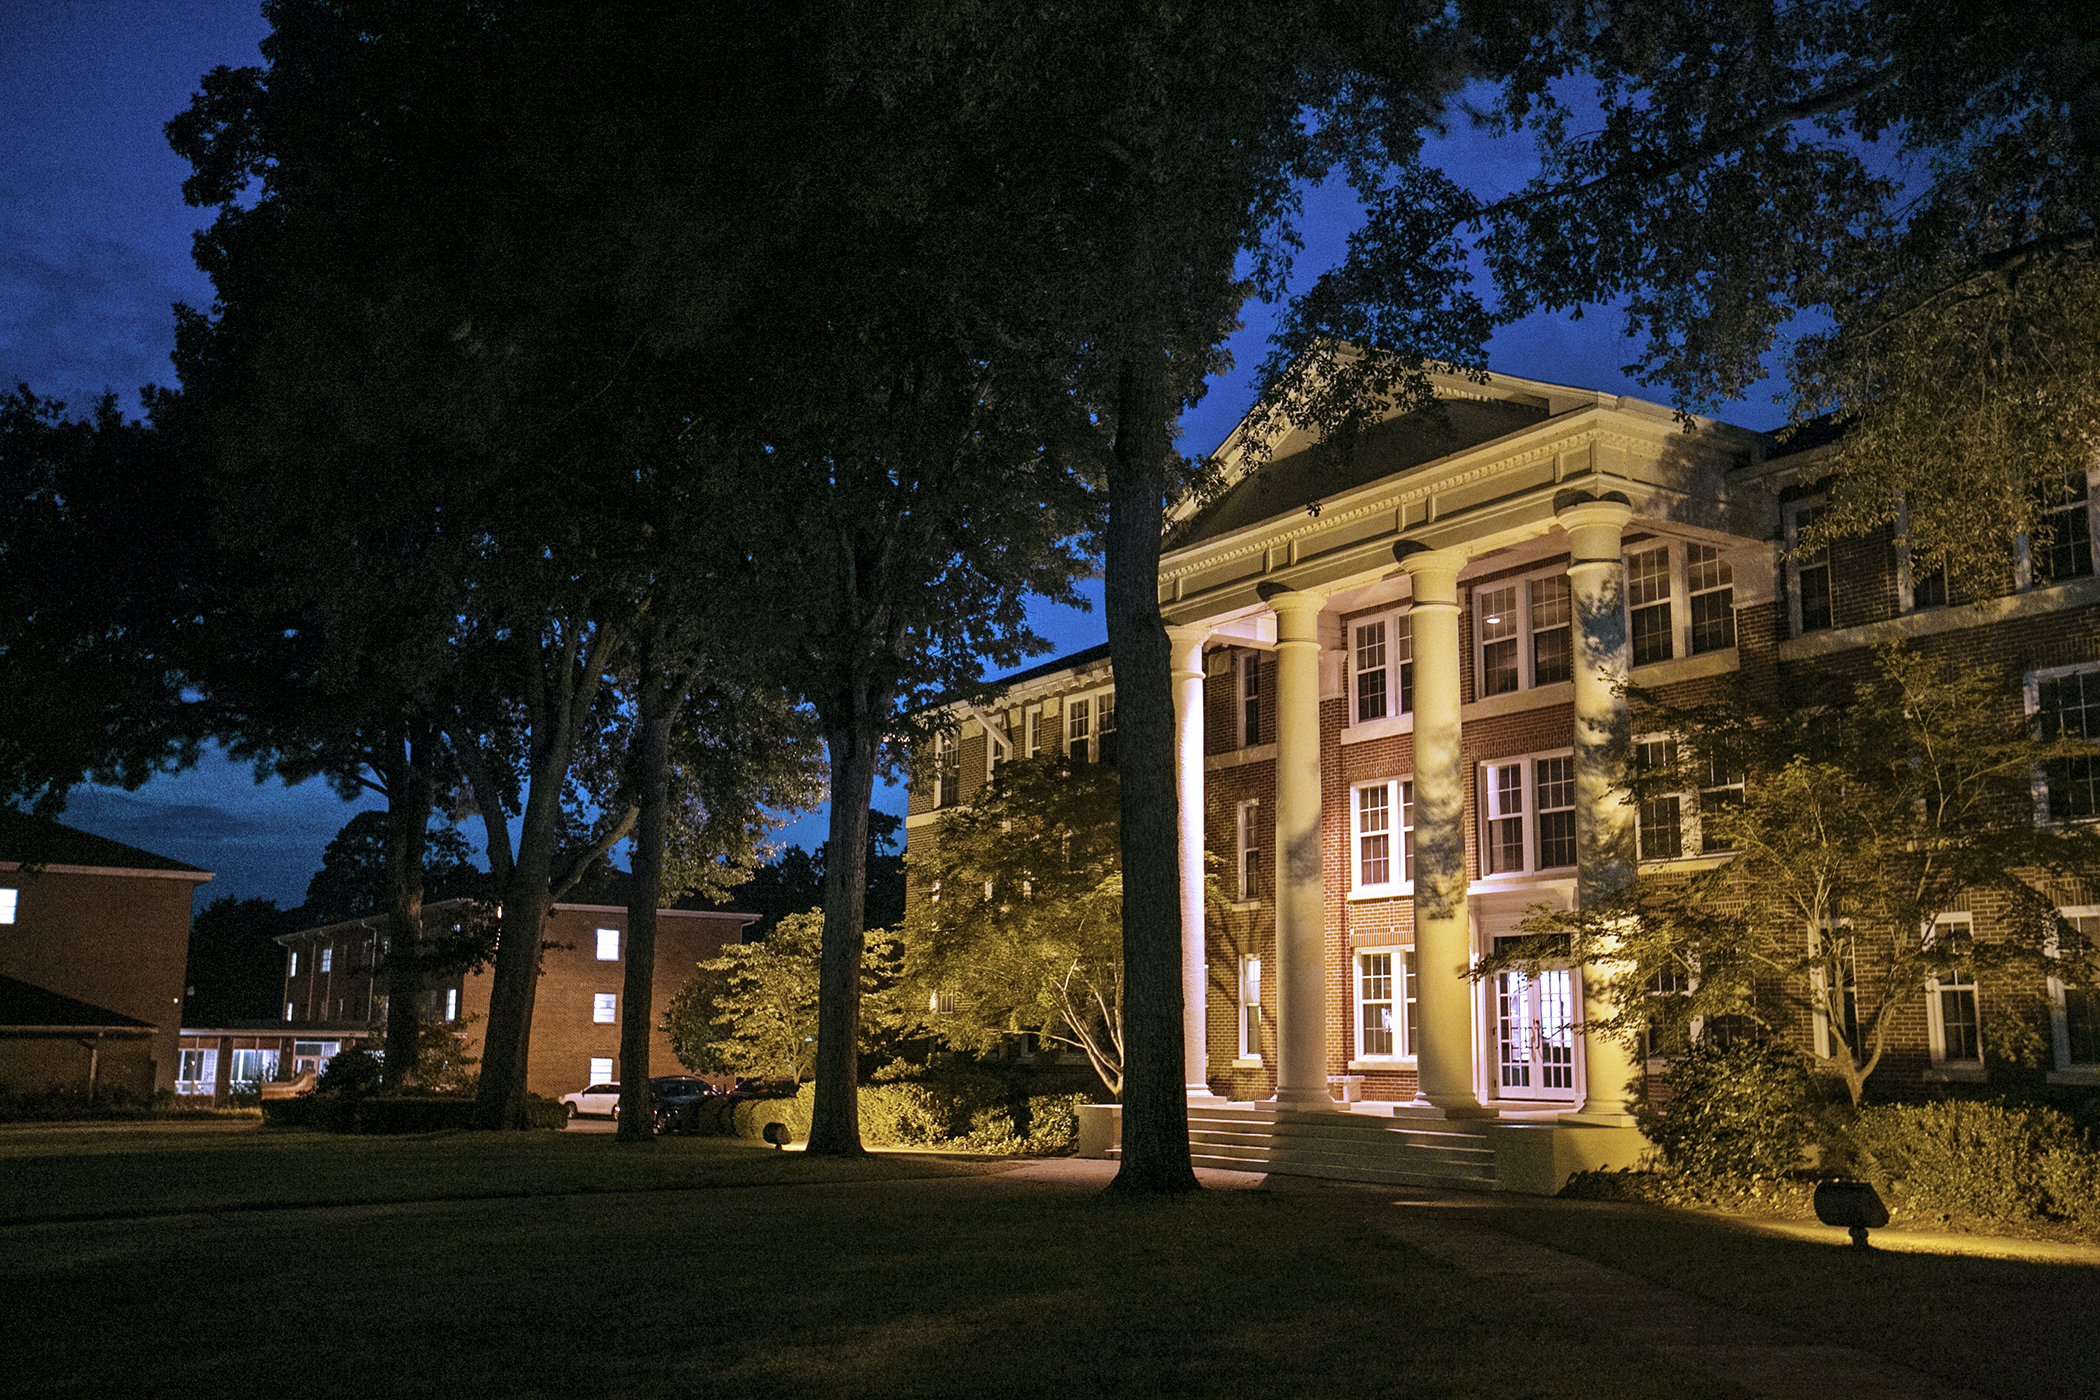 170815-merit-colleges-by-state-ouachita-baptist-university